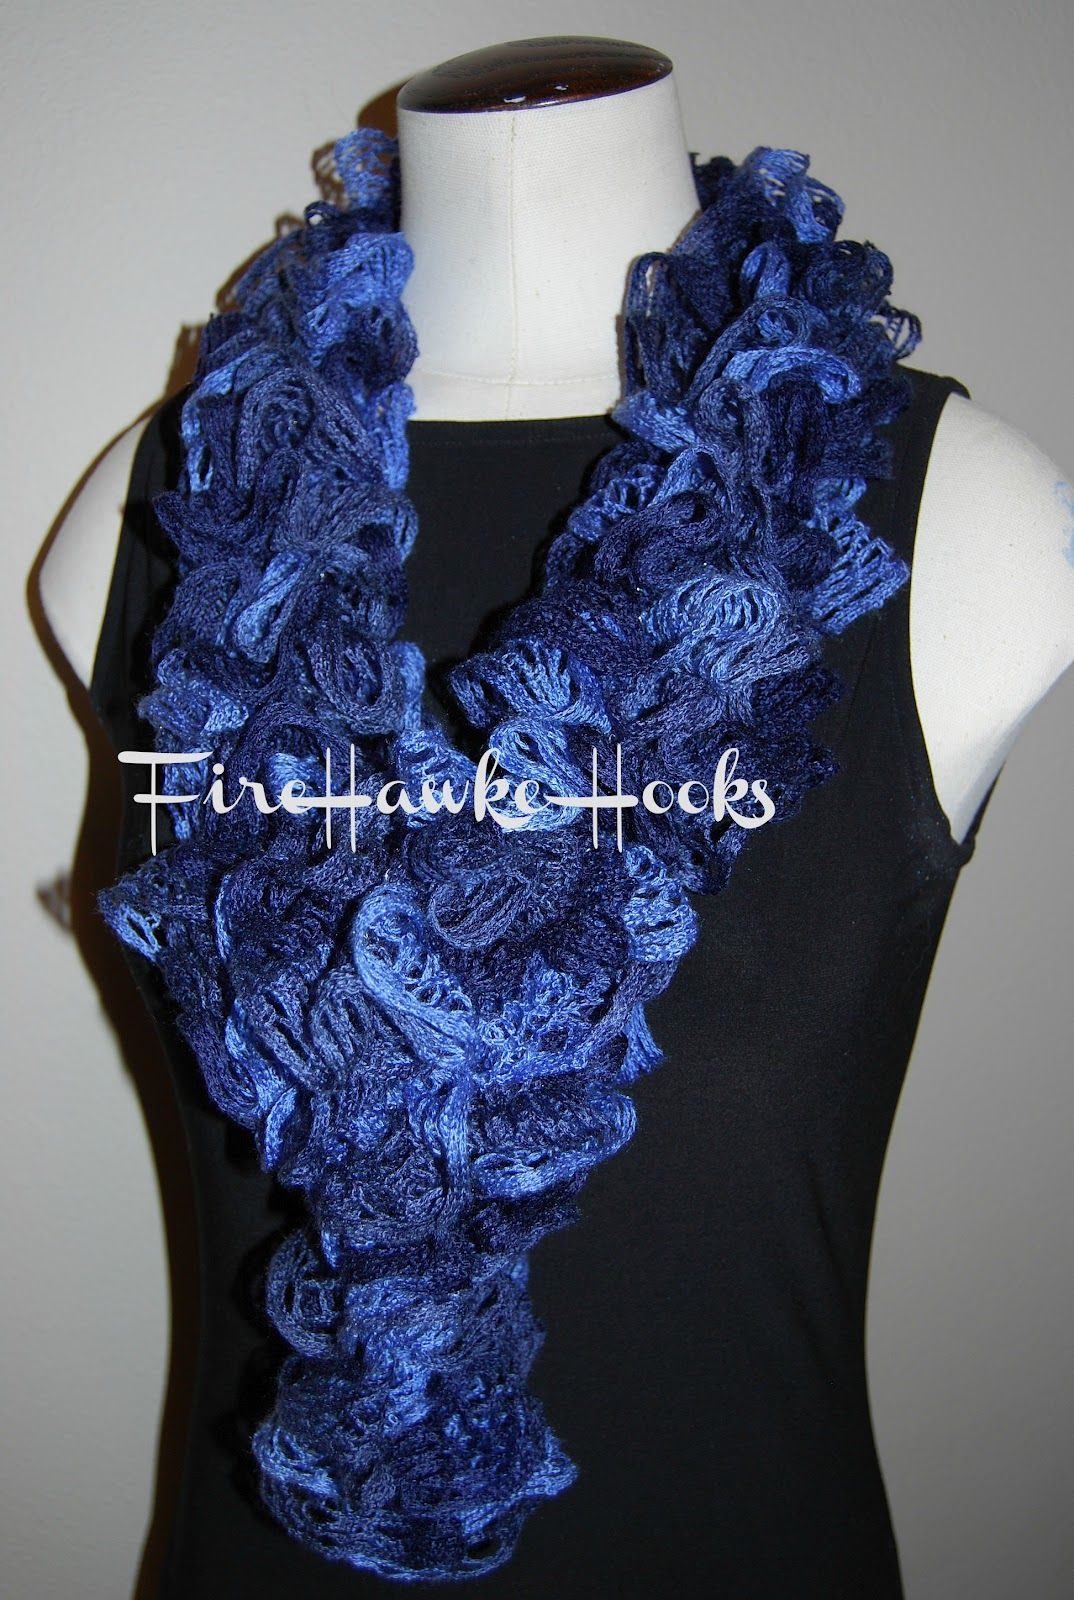 free pattern for crochet ruffle scarf | Firehawke Hooks and Needles ...